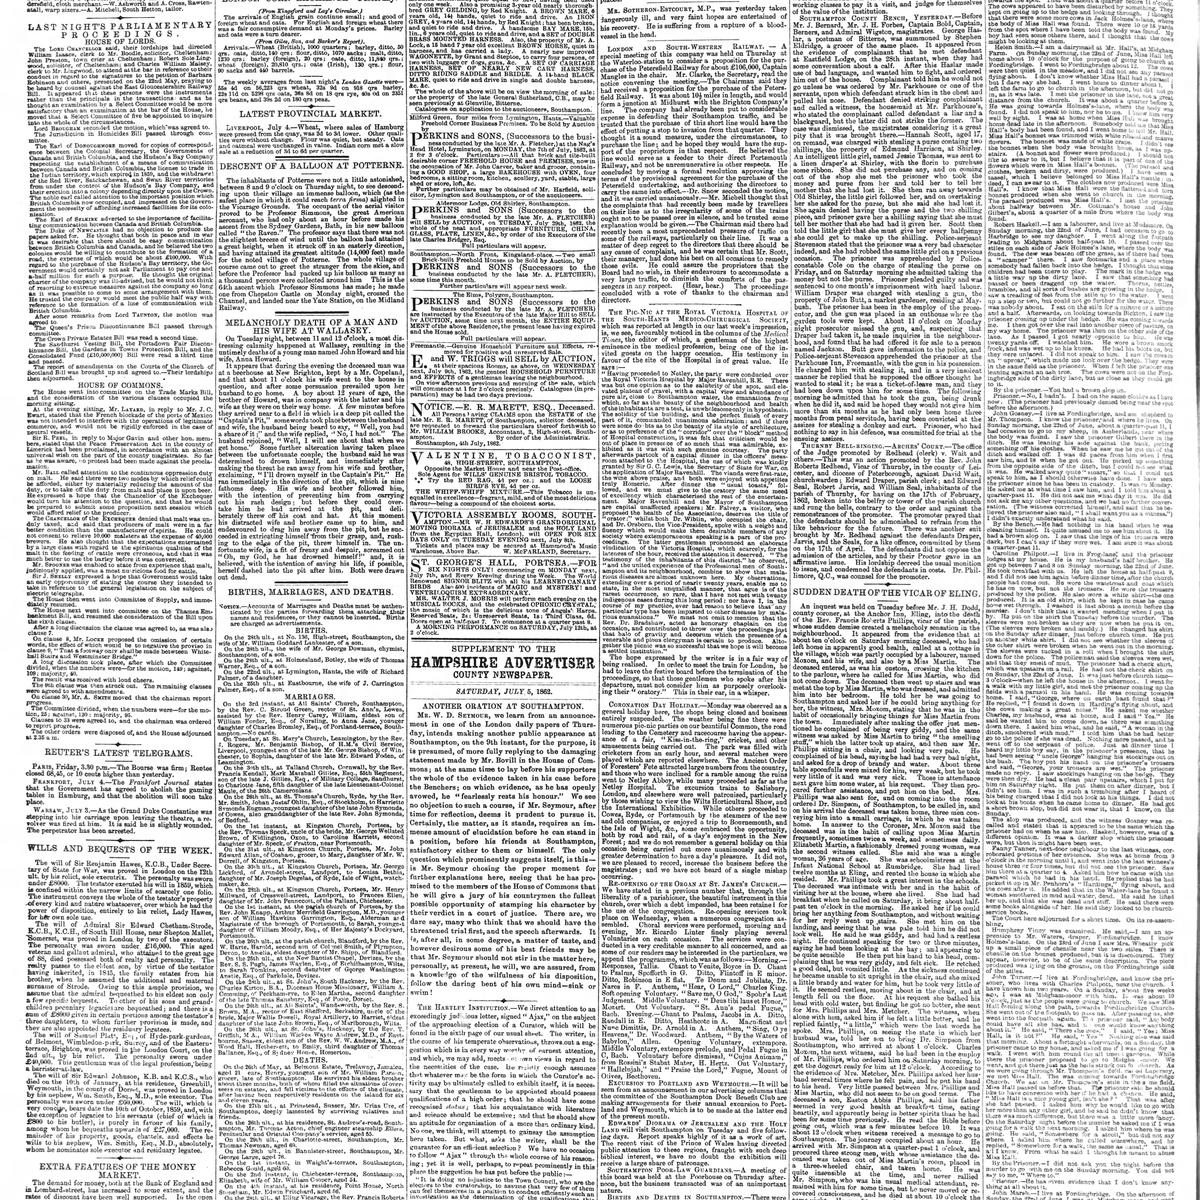 The Hampshire Advertiser, 1862-07-05, page 2